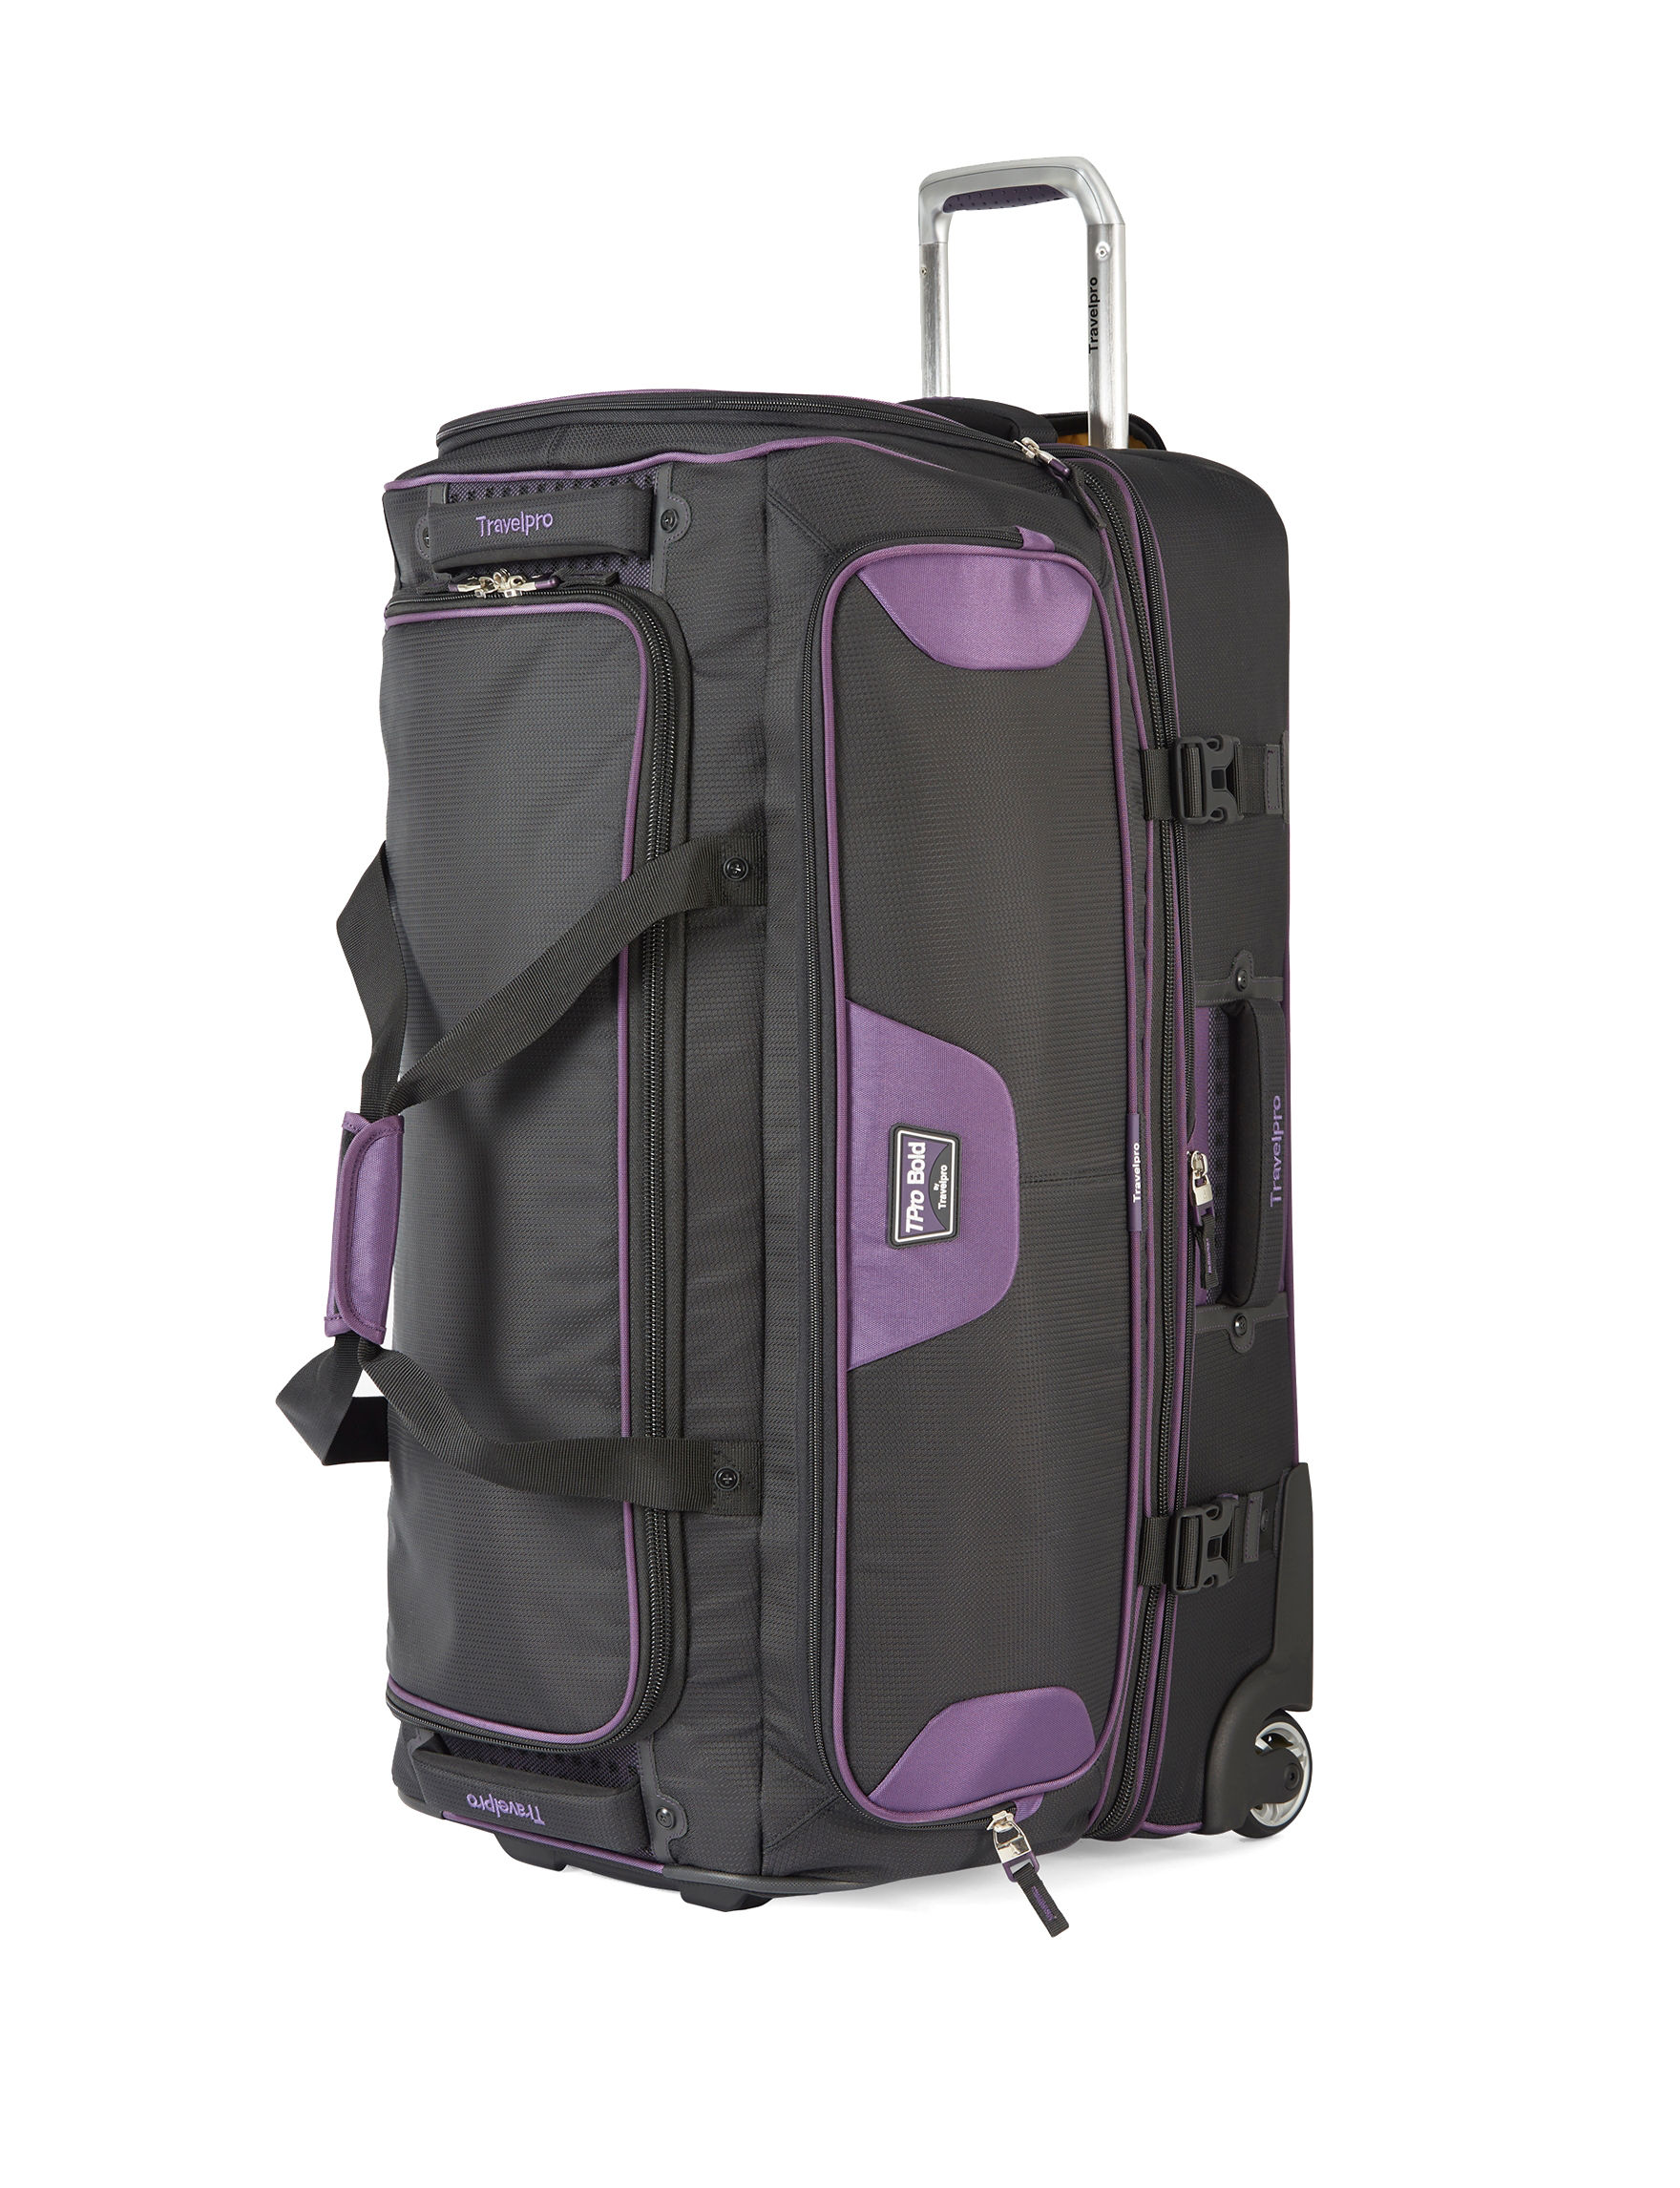 Travelpro Black/ Purple Duffle Bags